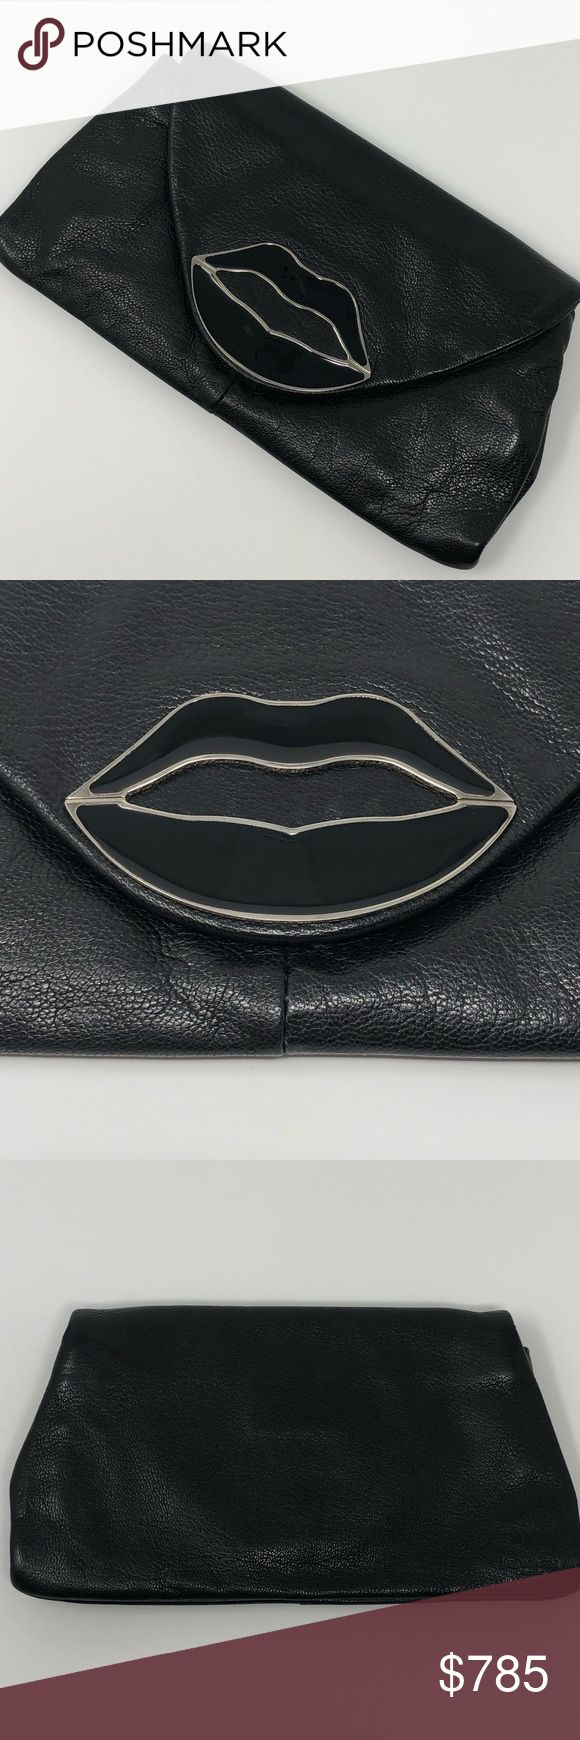 YSL Dali Lips Clutch 2003 BY Tom Ford BLACK RARE Immaculate condition carried 2x ▪️stored in my closet otherwise▪️no scratches to the lips▪️pebbled leather▪️2003 tom ford for Ysl dali collection▪️magnetic front snap closure▪️embossed yves saint laurent on back▪️corners show no wear▪️8in long x 4 1/4in high x 1in max depth (fits an iphone X cards + cards/cash and snaps)▪️no original dustcover or other items included will carefully pack and provide replacement dustcover Yves Saint Laurent Bags…